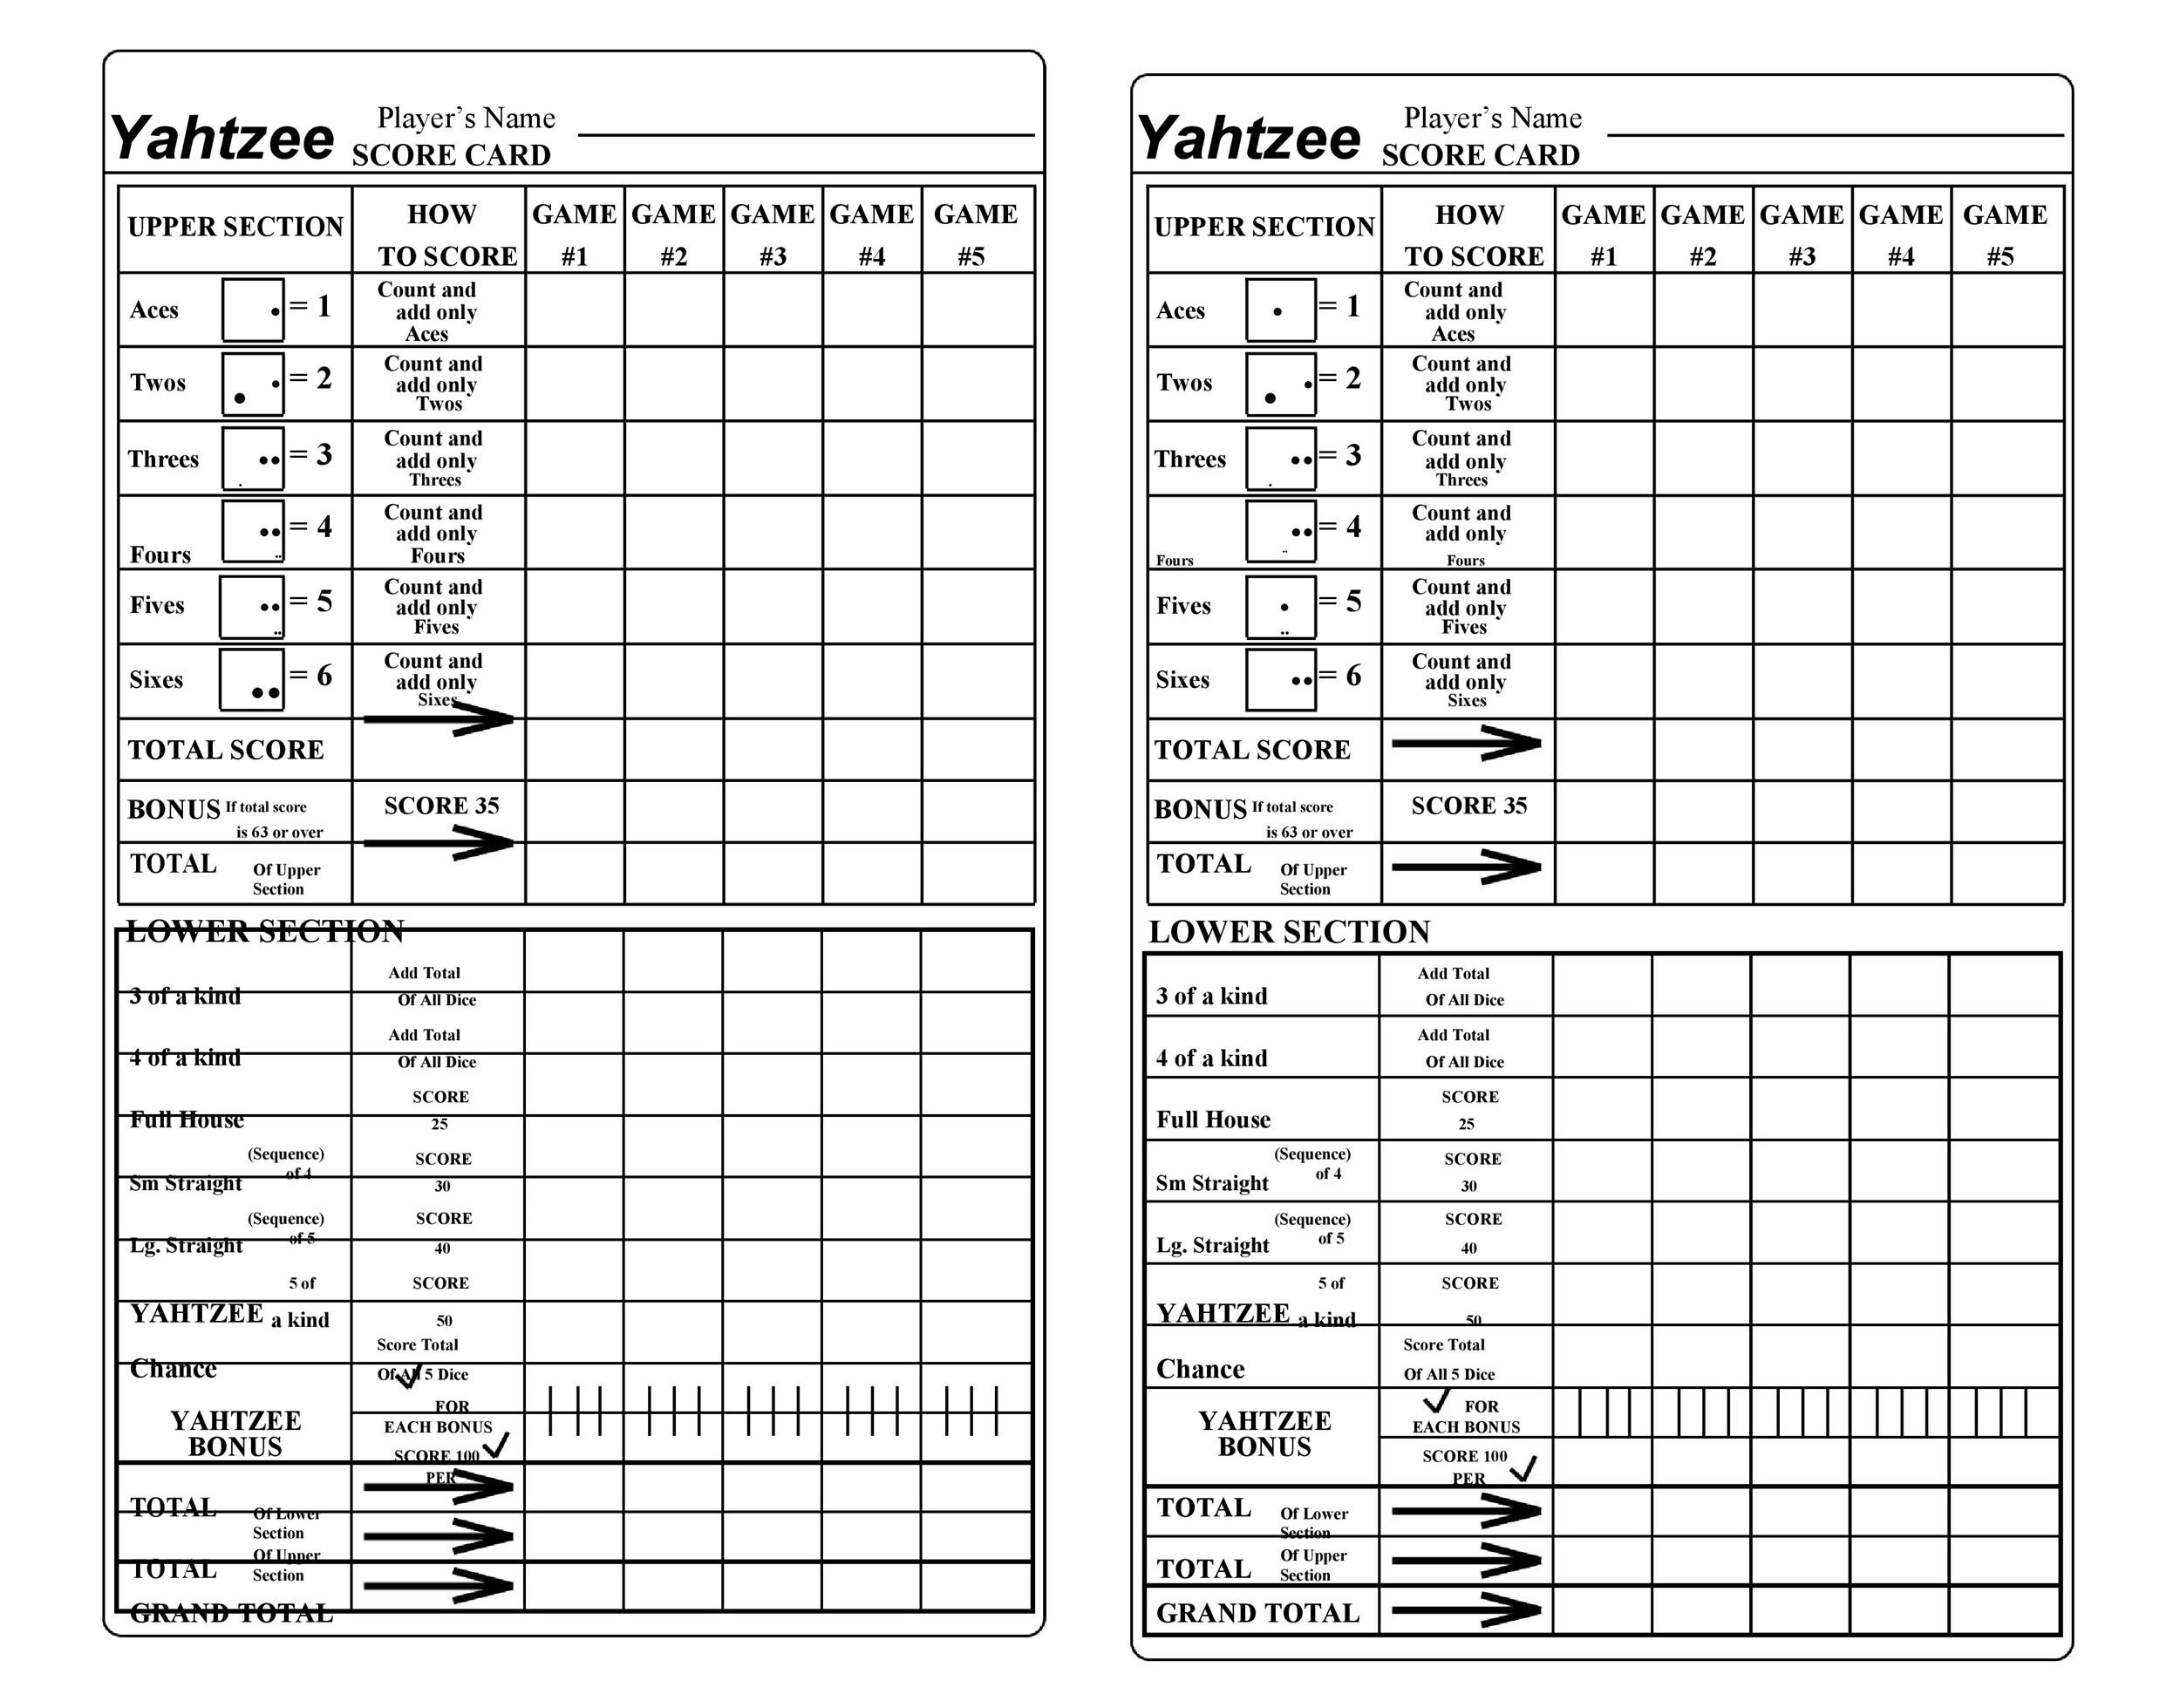 image about Yahtzee Score Card Printable referred to as 28 Printable Yahtzee Rating Sheets Playing cards (101% Totally free) ᐅ